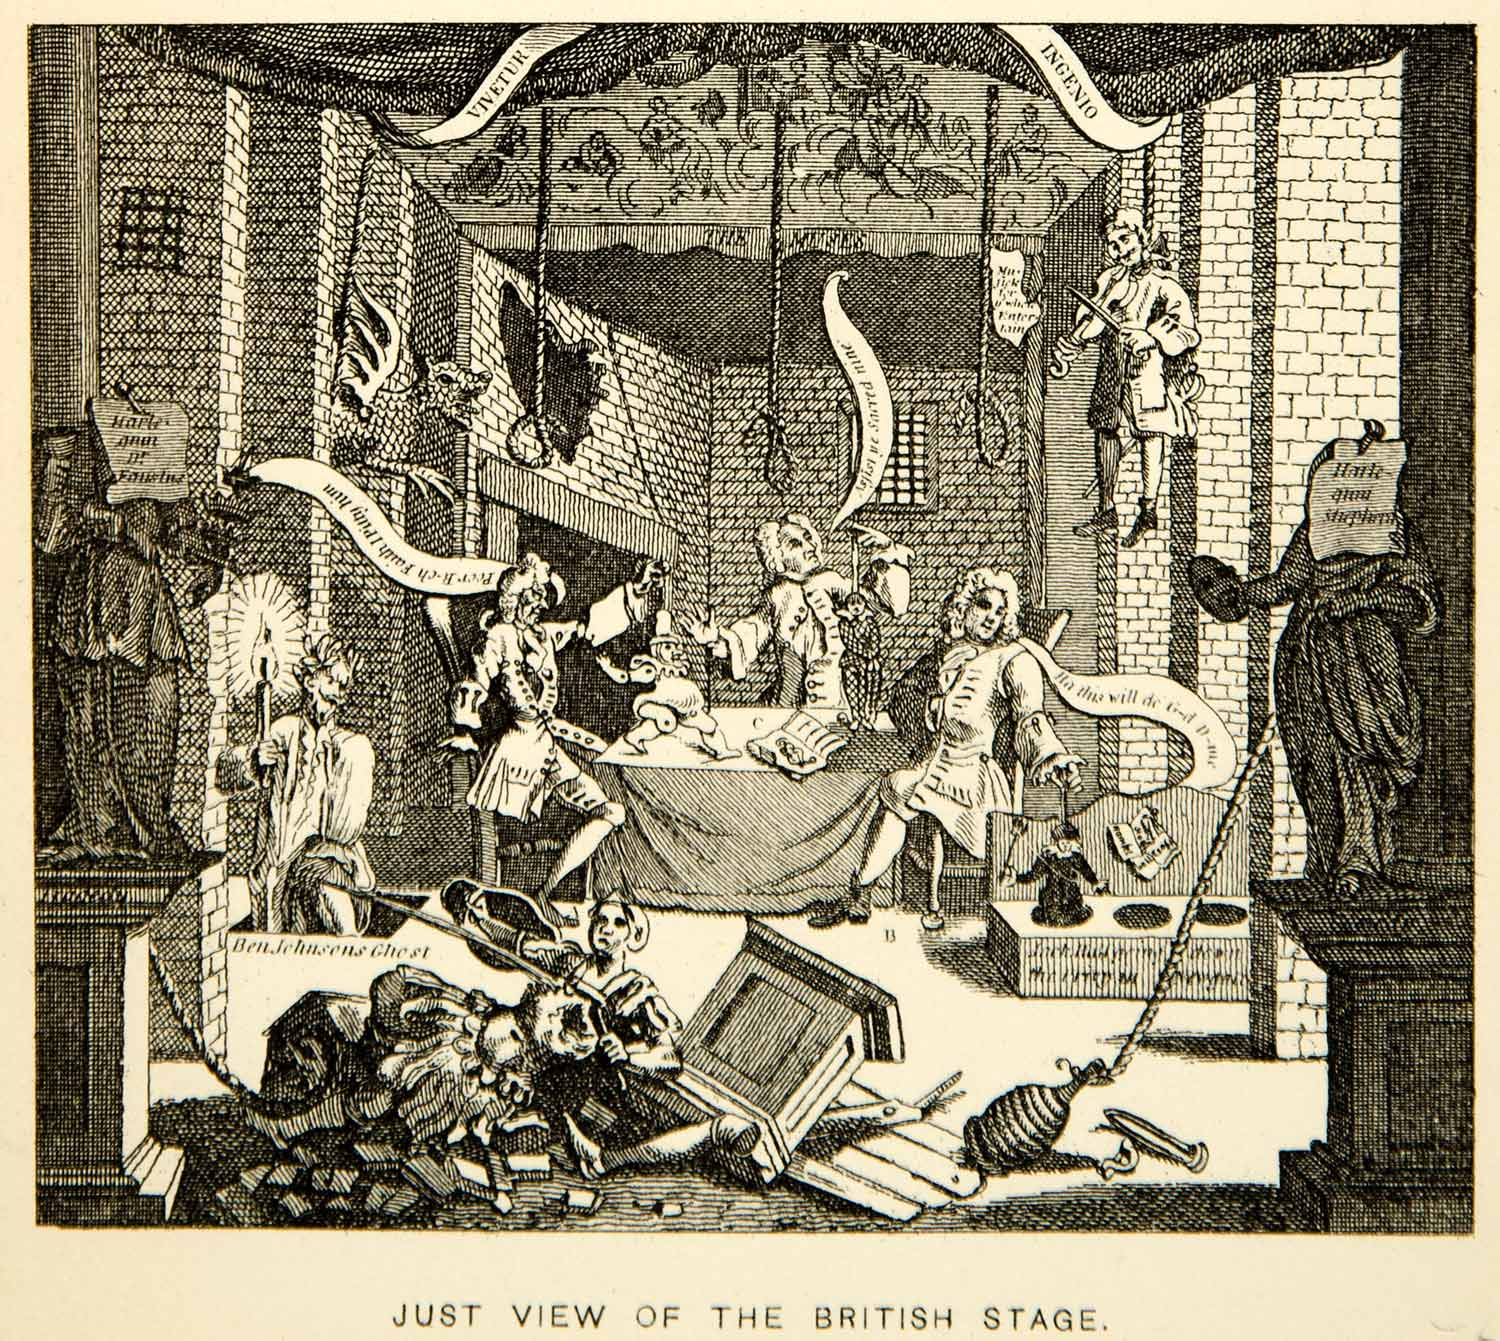 1883 Photolithograph William Hogarth Art Just View British Stage Theater XACA2